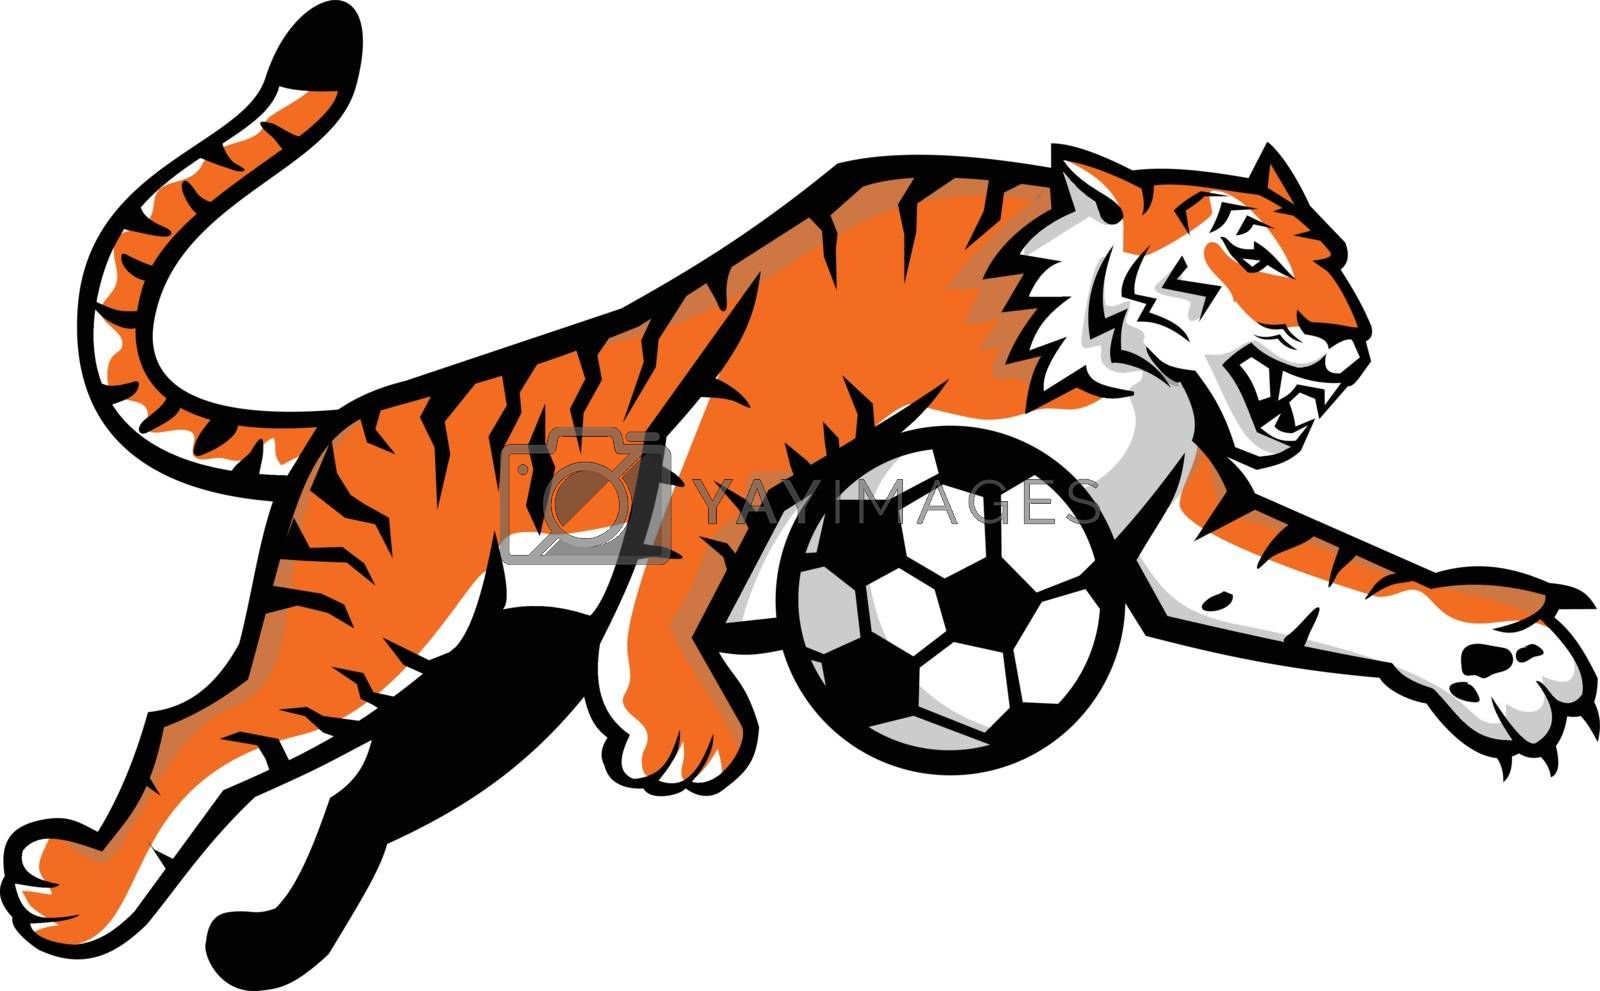 Mascot icon illustration of a tiger running, jumping, dribbling soccer football ball viewed from side  on isolated background in retro style.